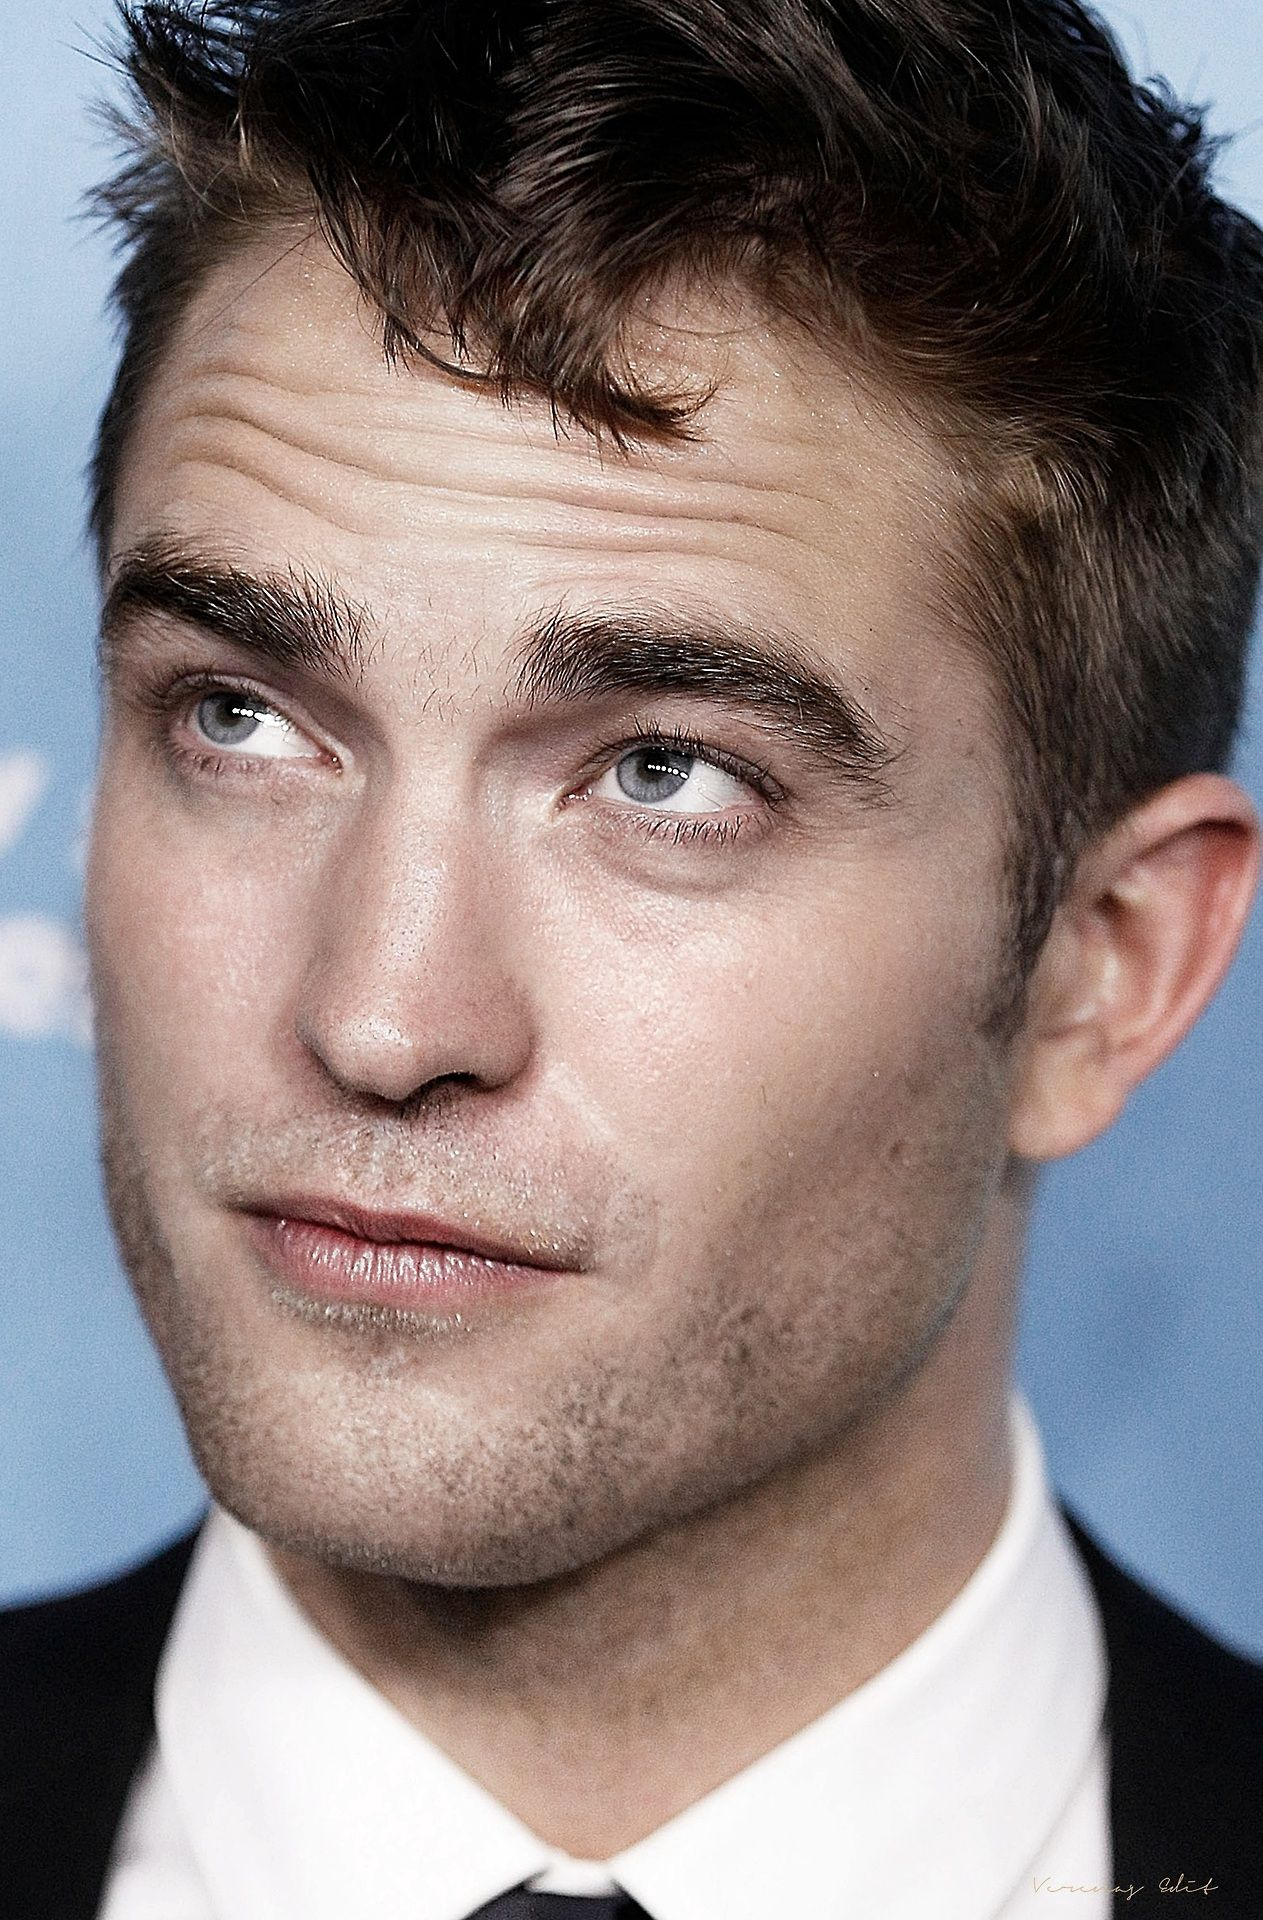 Verena Does This One Justice Robert Pattinson Movies Robert Pattinson Robert Pattinson Twilight